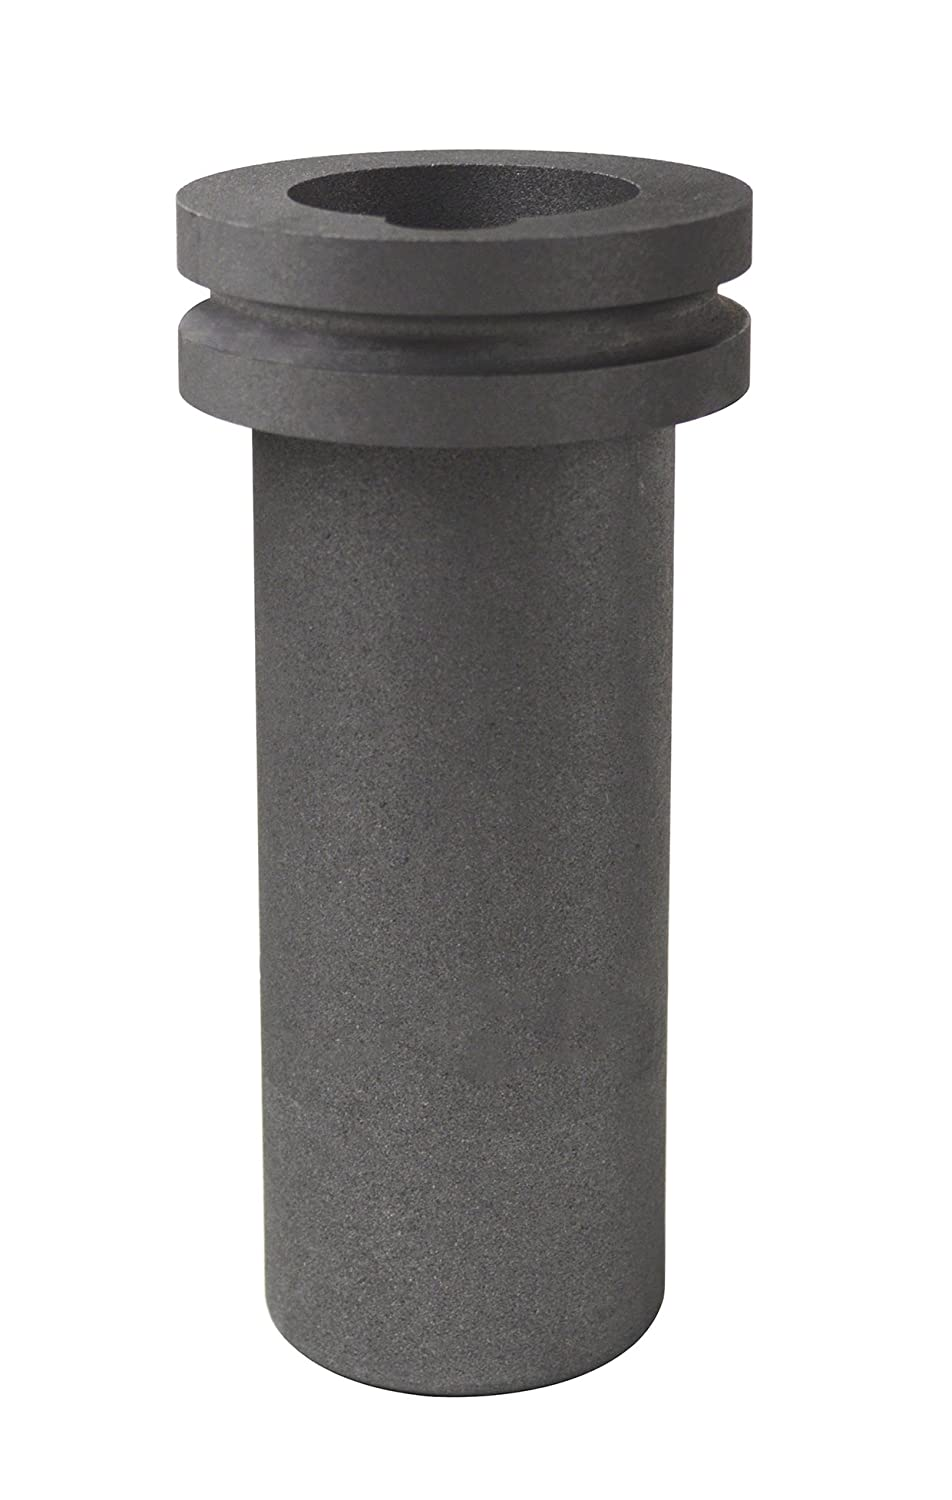 30 oz 1 Kg Electro-Melt Kerr Furnace Graphite Crucible w/Groove for Precious Metal Casting Refining Gold Melting PMC Supplies CRU-0025